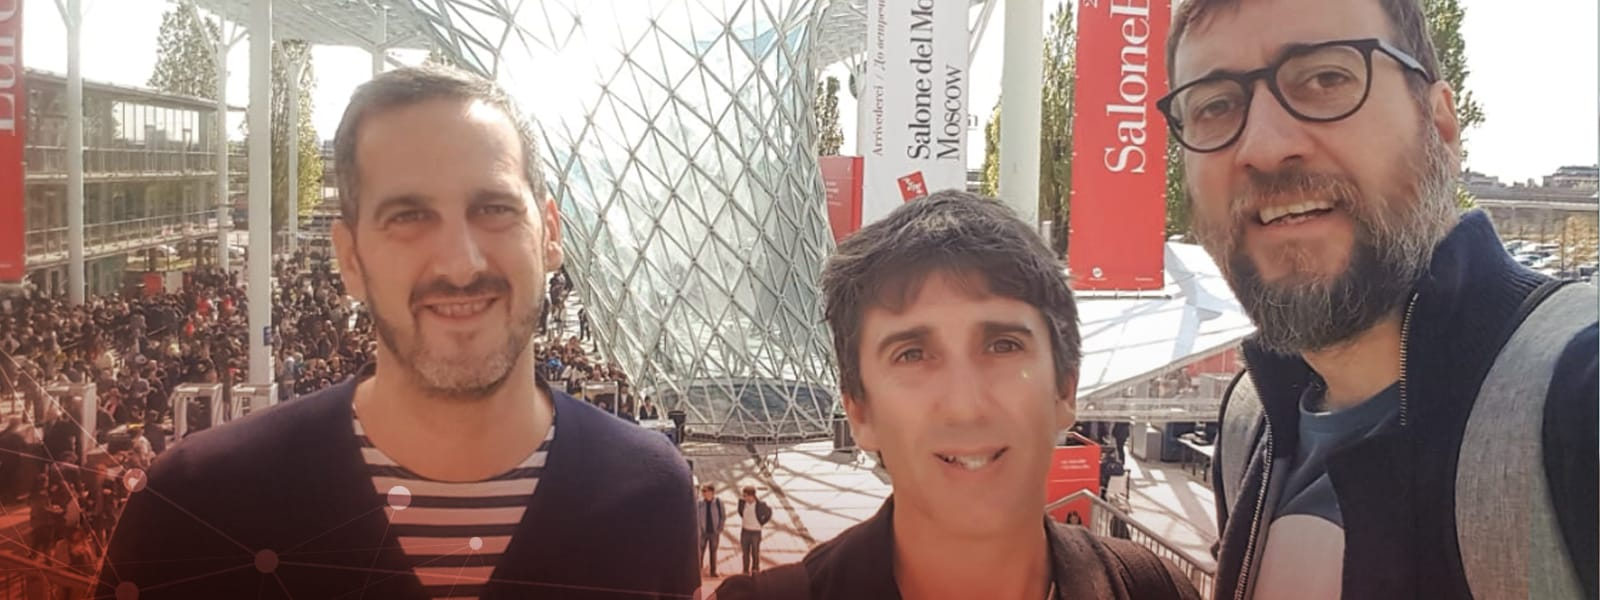 Flow visita el Salone del Mobile 2019